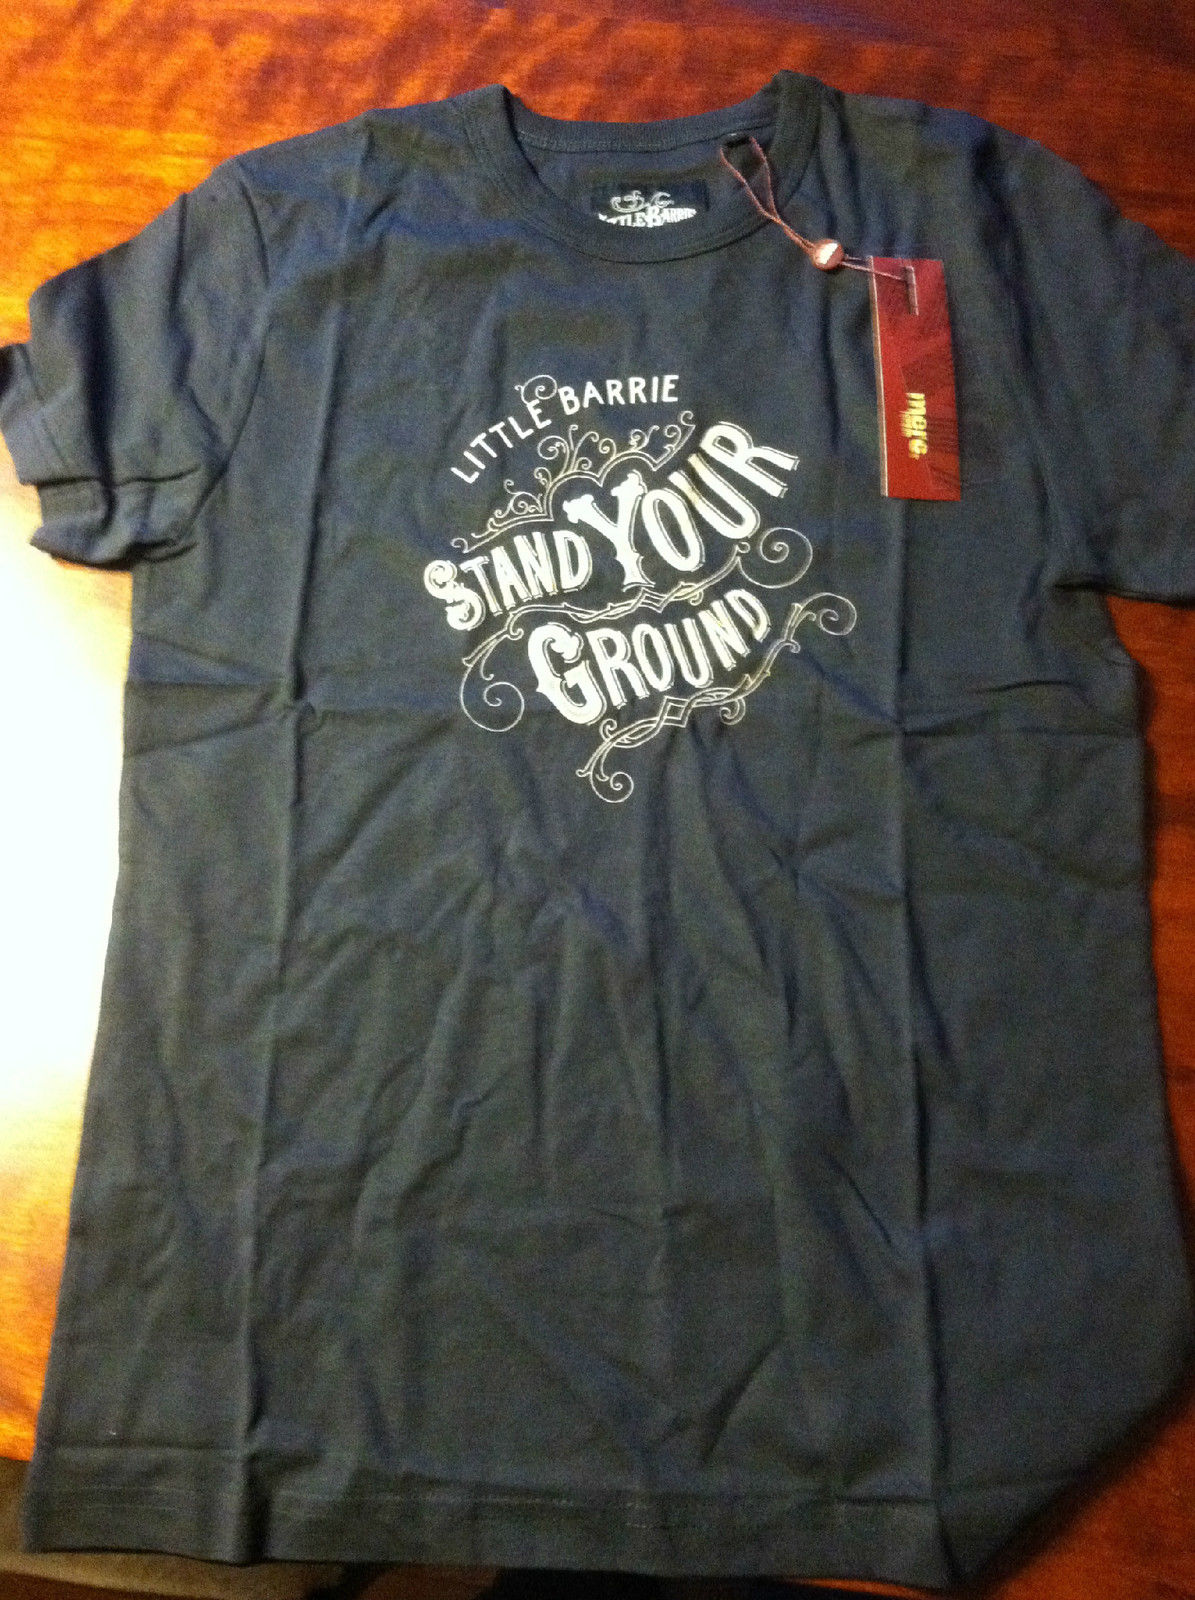 Little Barrie - Stand Your Ground (SHIRT, UK)